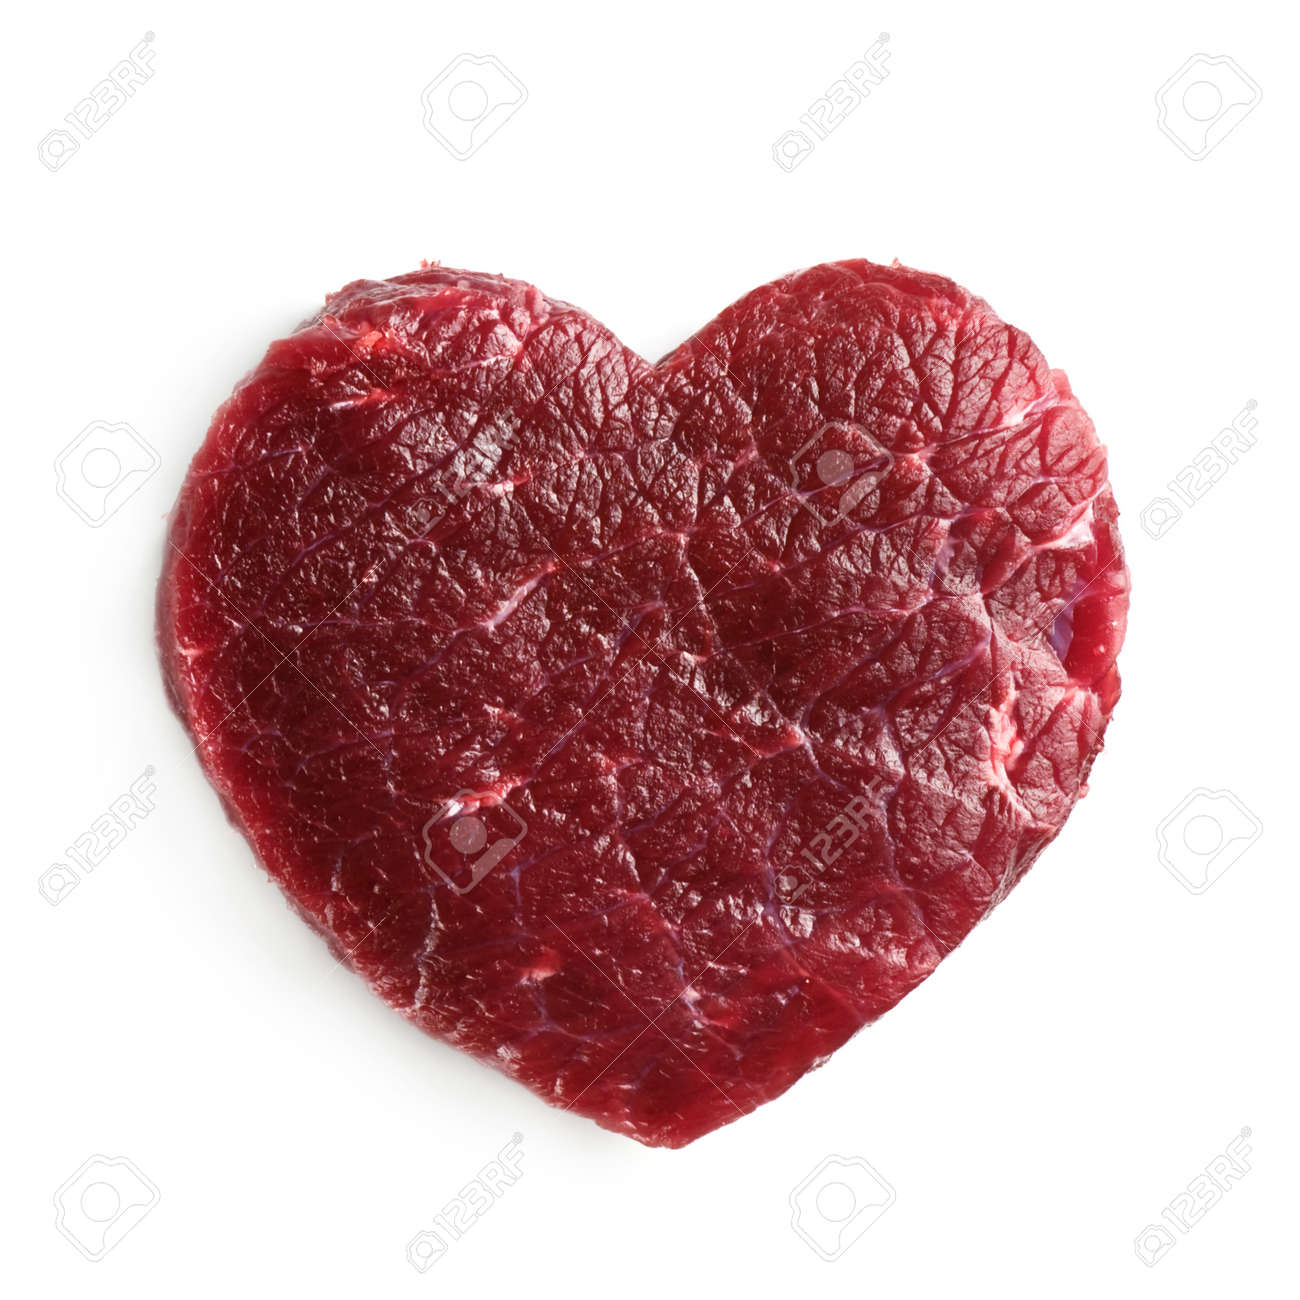 beef heart isolated on white Standard-Bild - 21919429